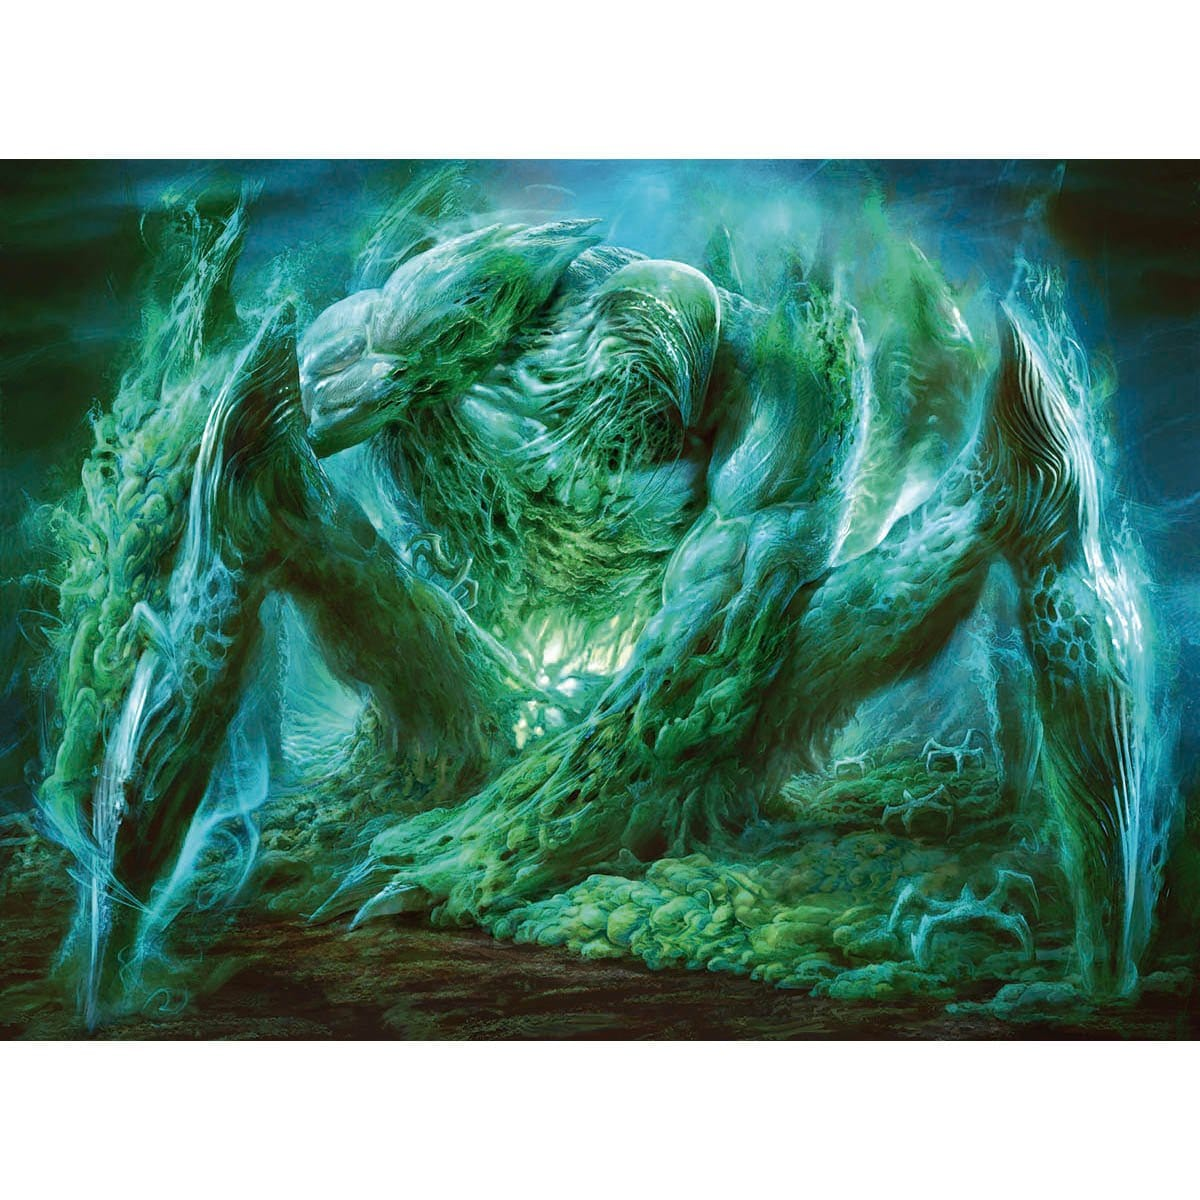 Ixidron Print - Print - Original Magic Art - Accessories for Magic the Gathering and other card games